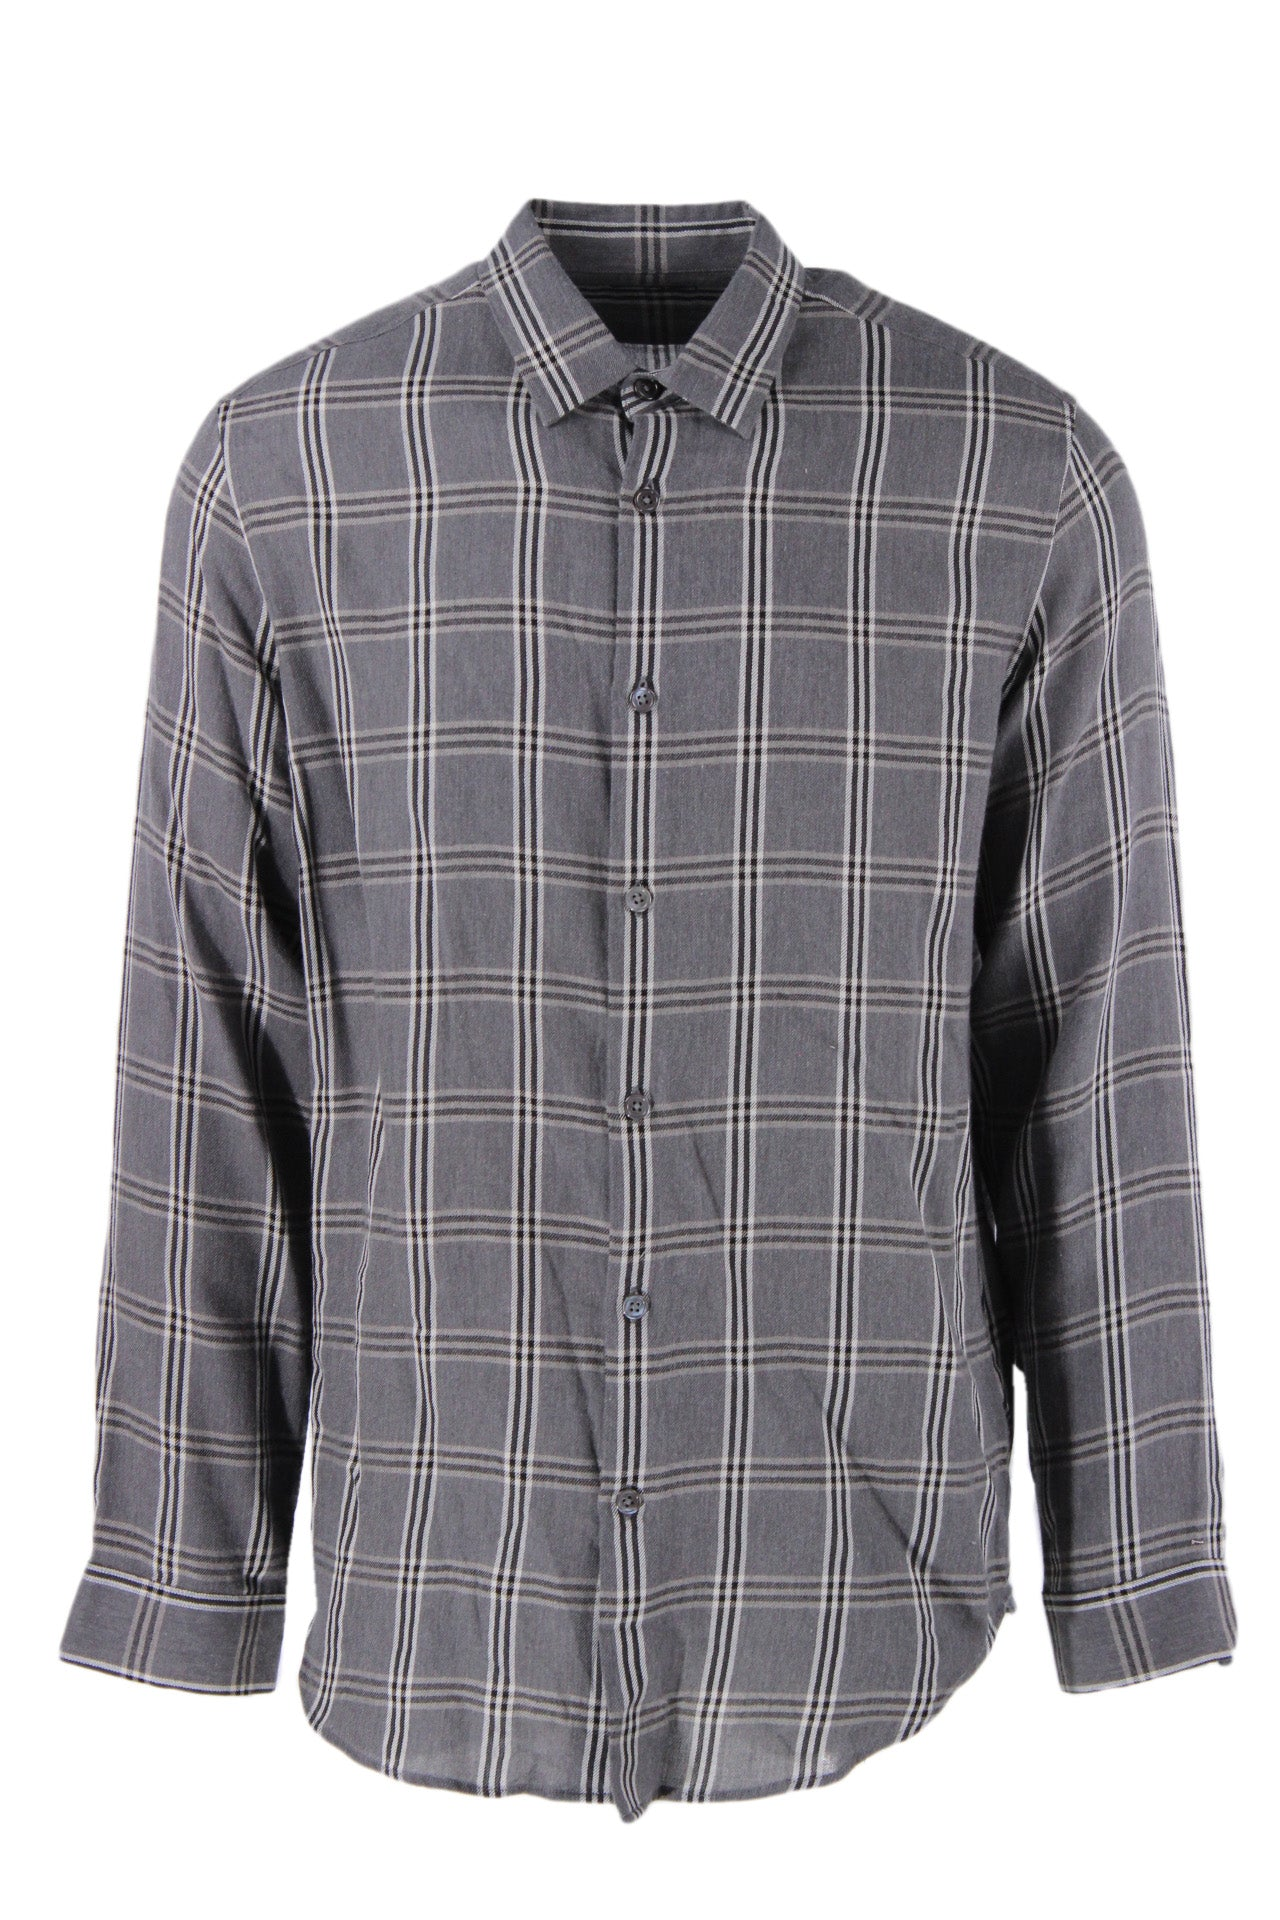 theory gray, black, and white 'tait lightweight plaid' long sleeve button down shirt. features minimal collar and rounded hemline in a relaxed cut.